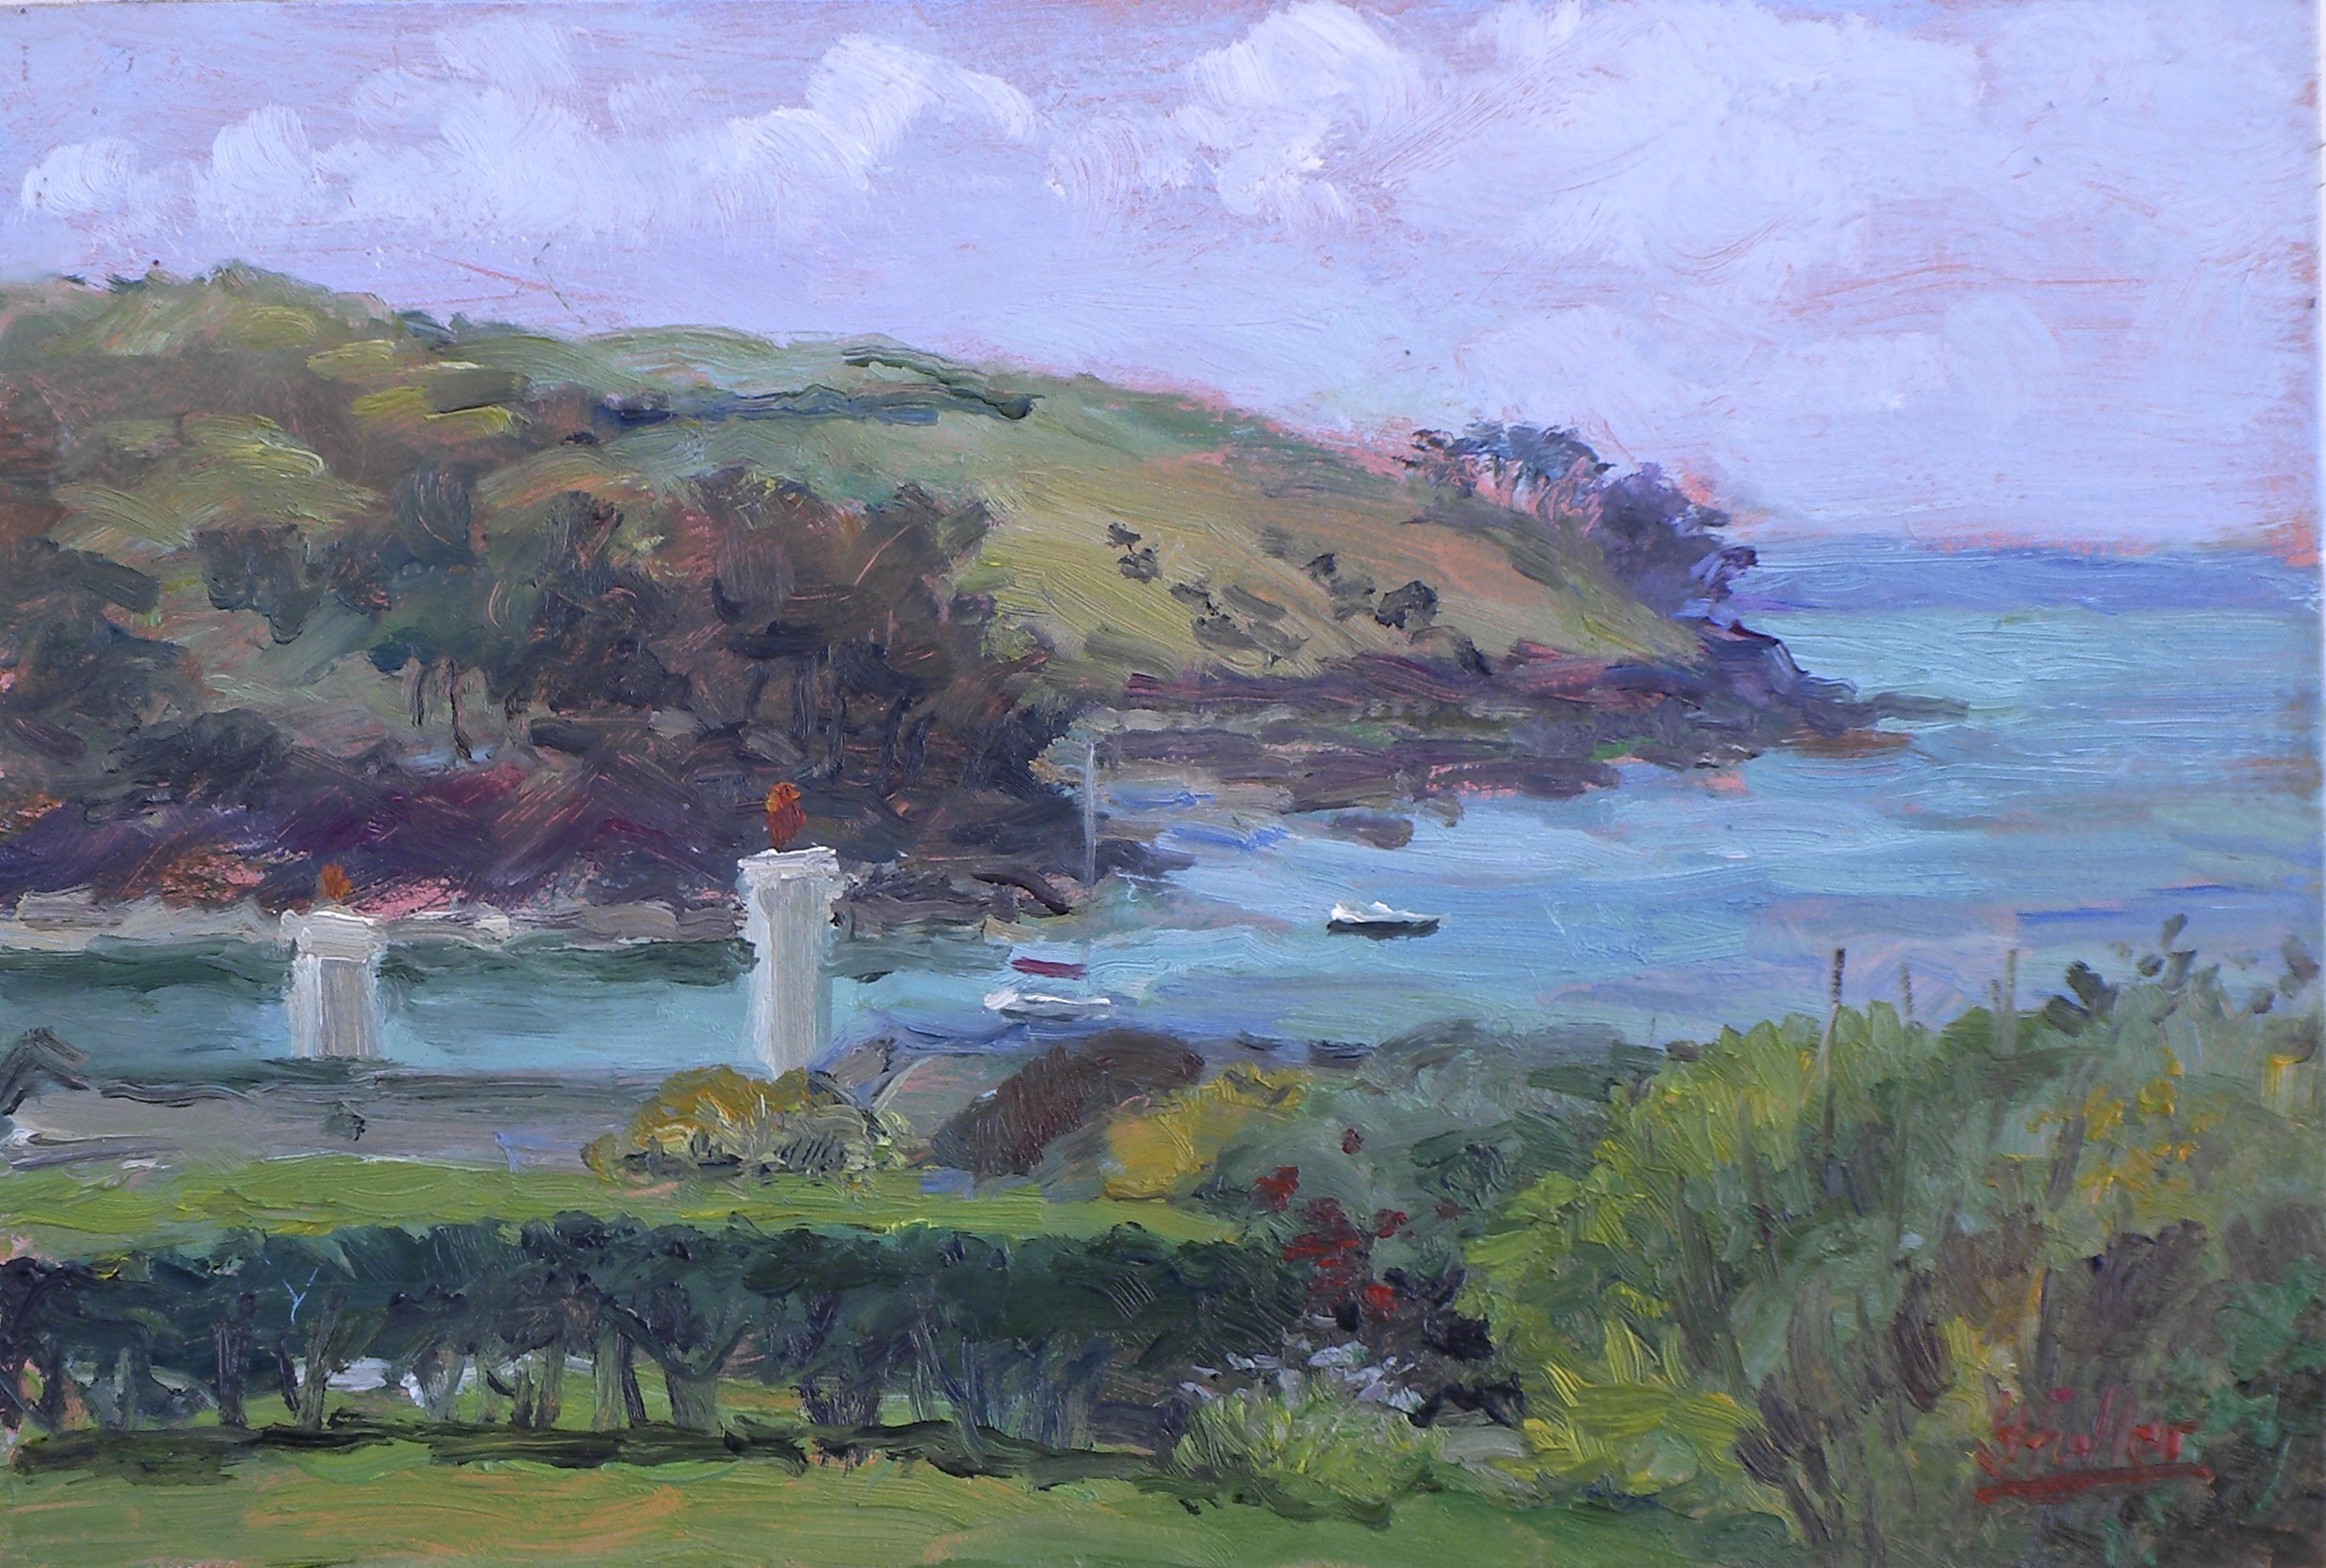 741 St Mawes harbour from Polvarth Point